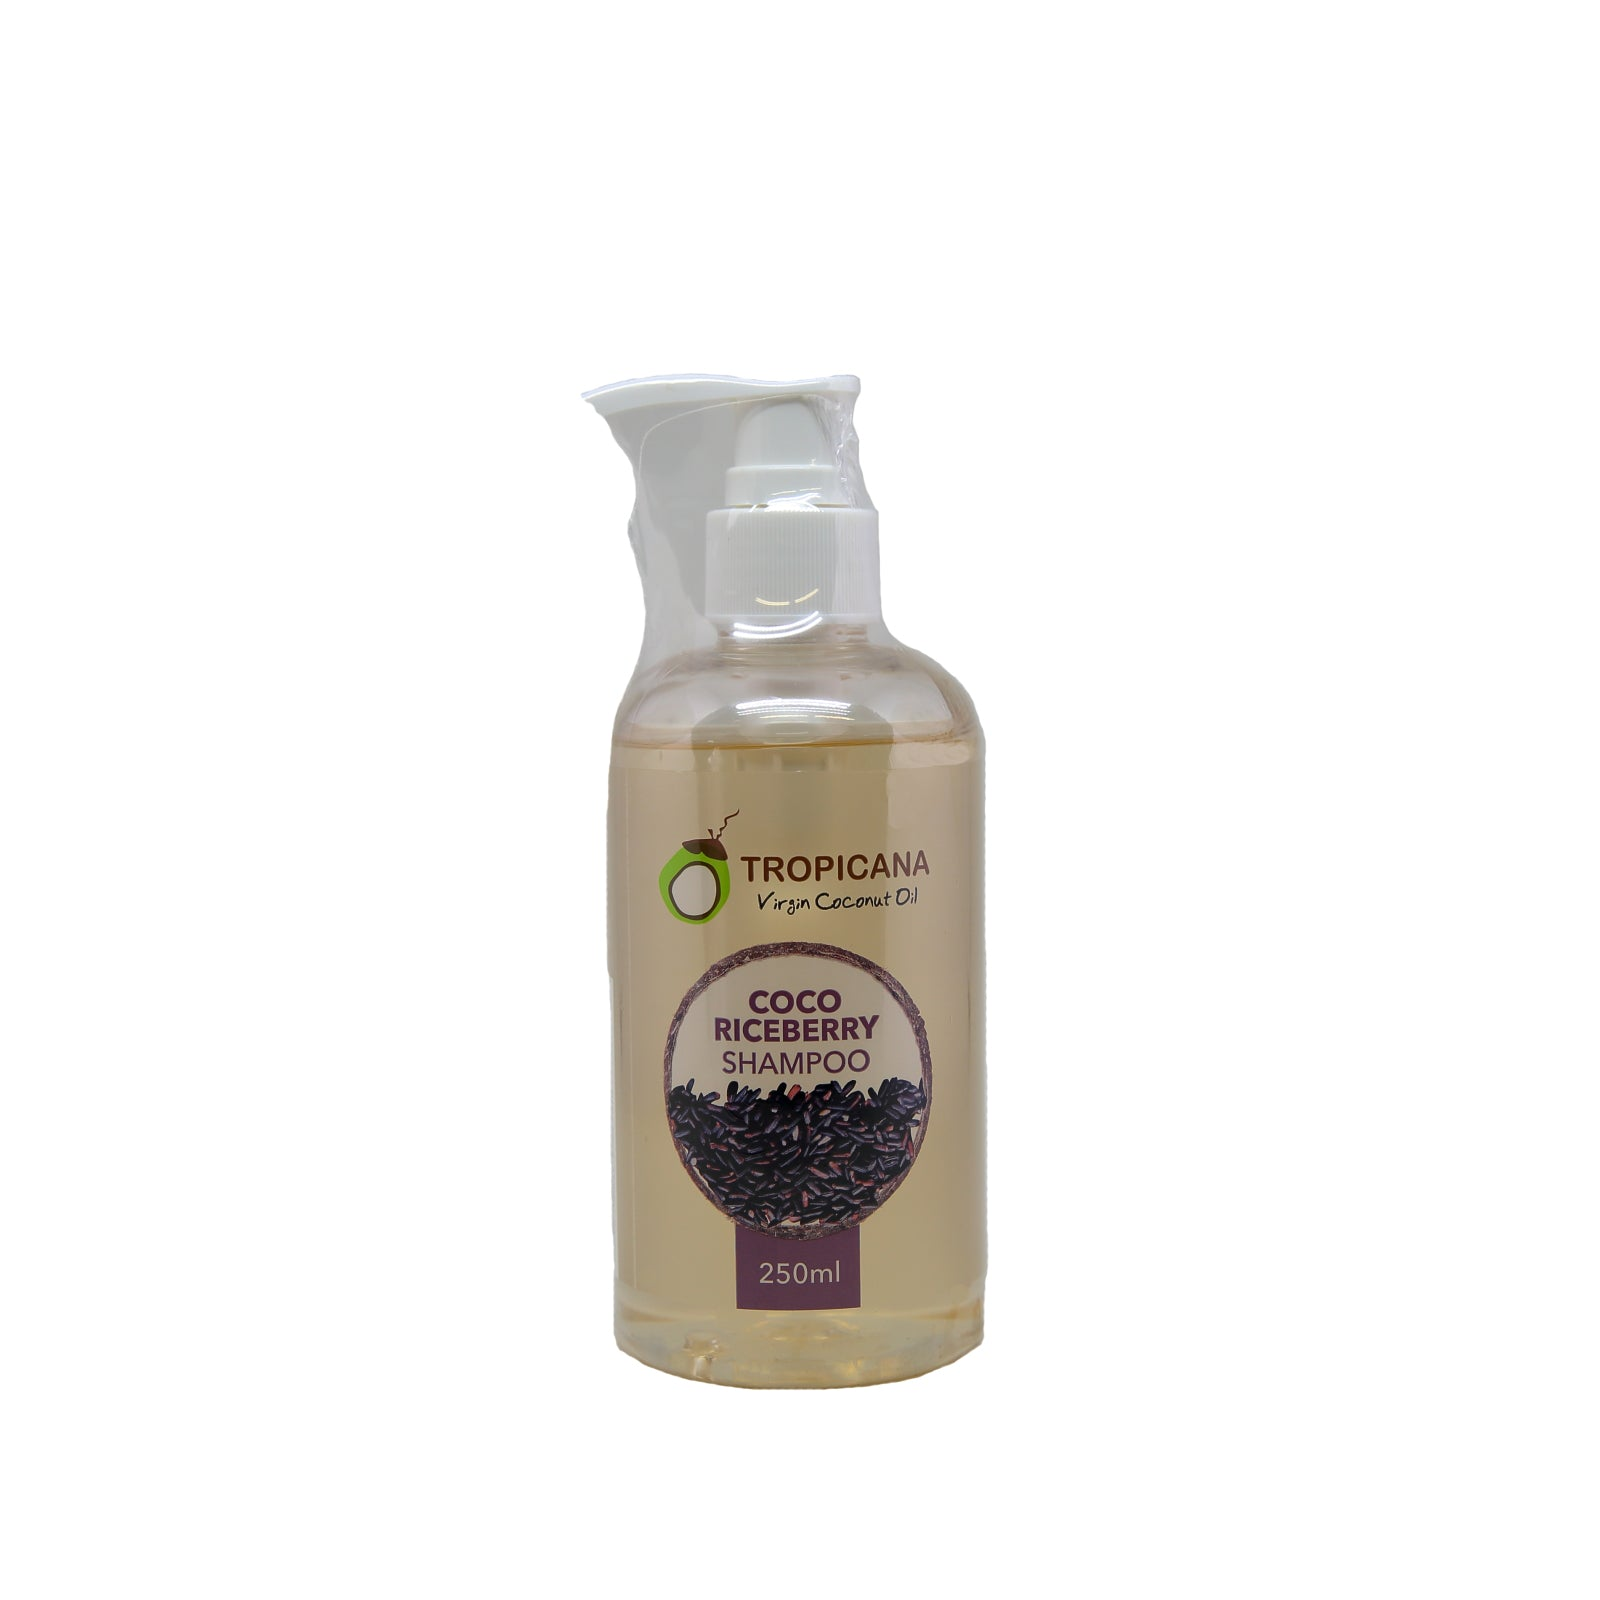 Tropicana Virgin Coconut Oil - Coco Riceberry Shampoo - 250ml